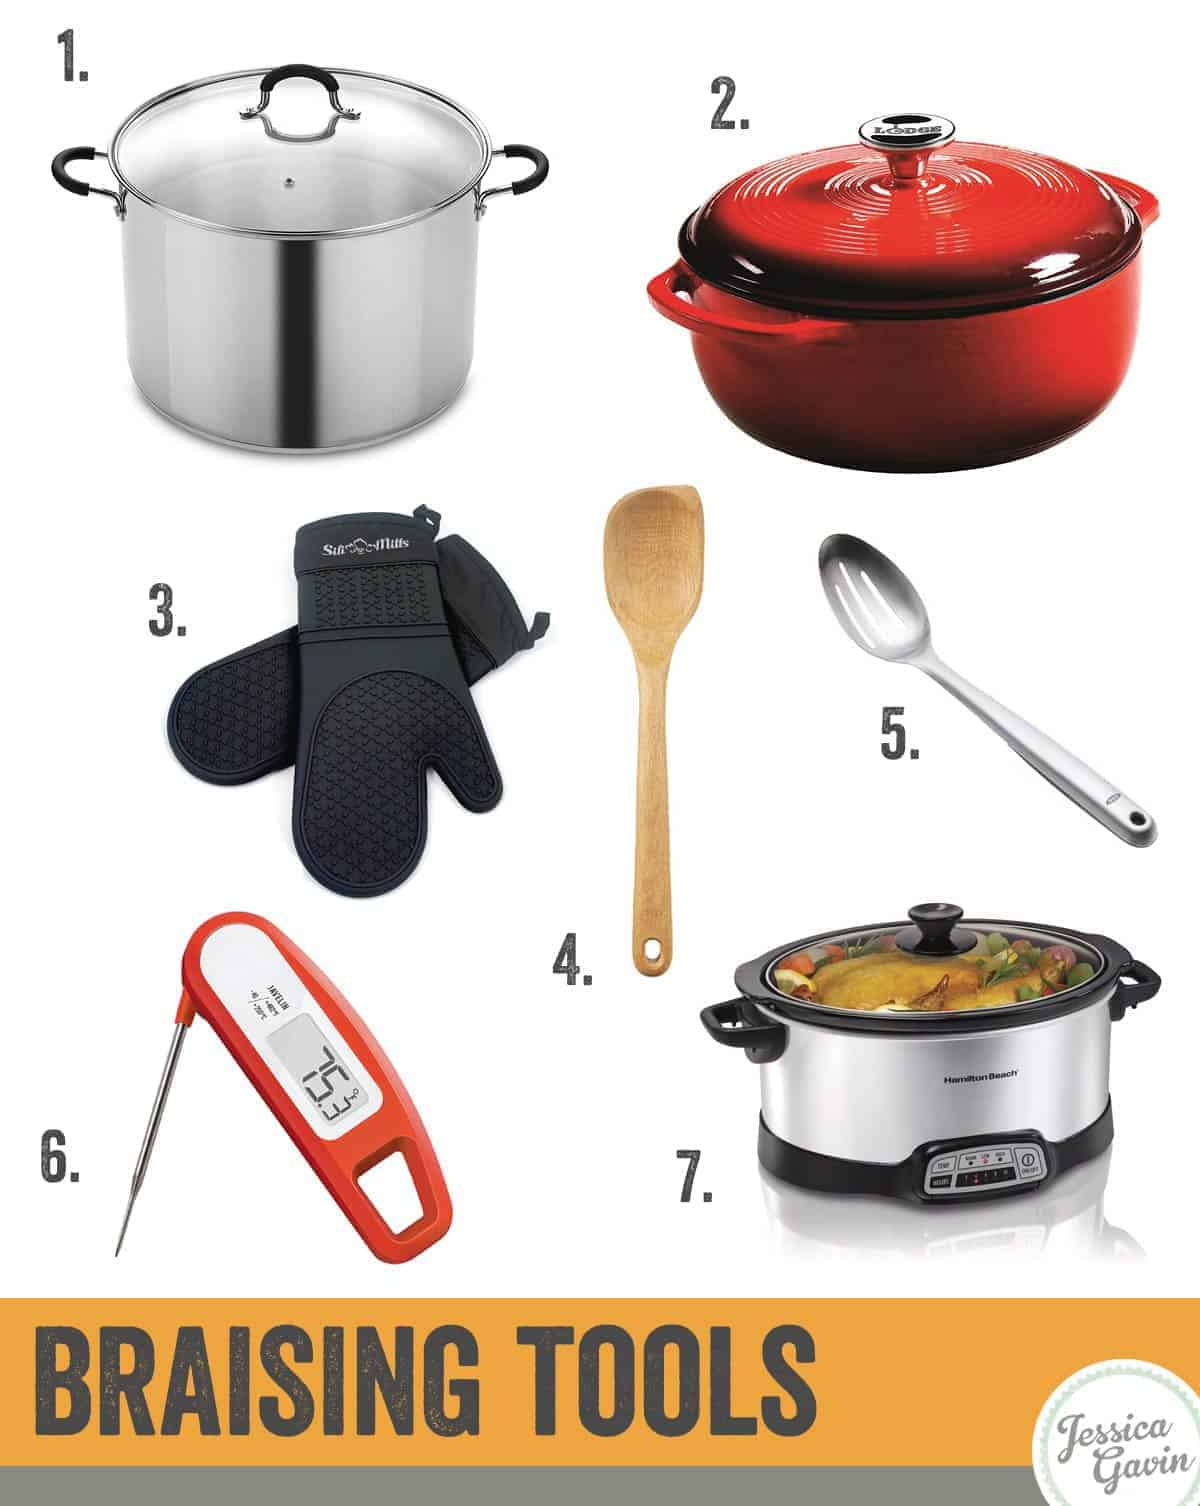 infographics showing different kitchen tools for braising